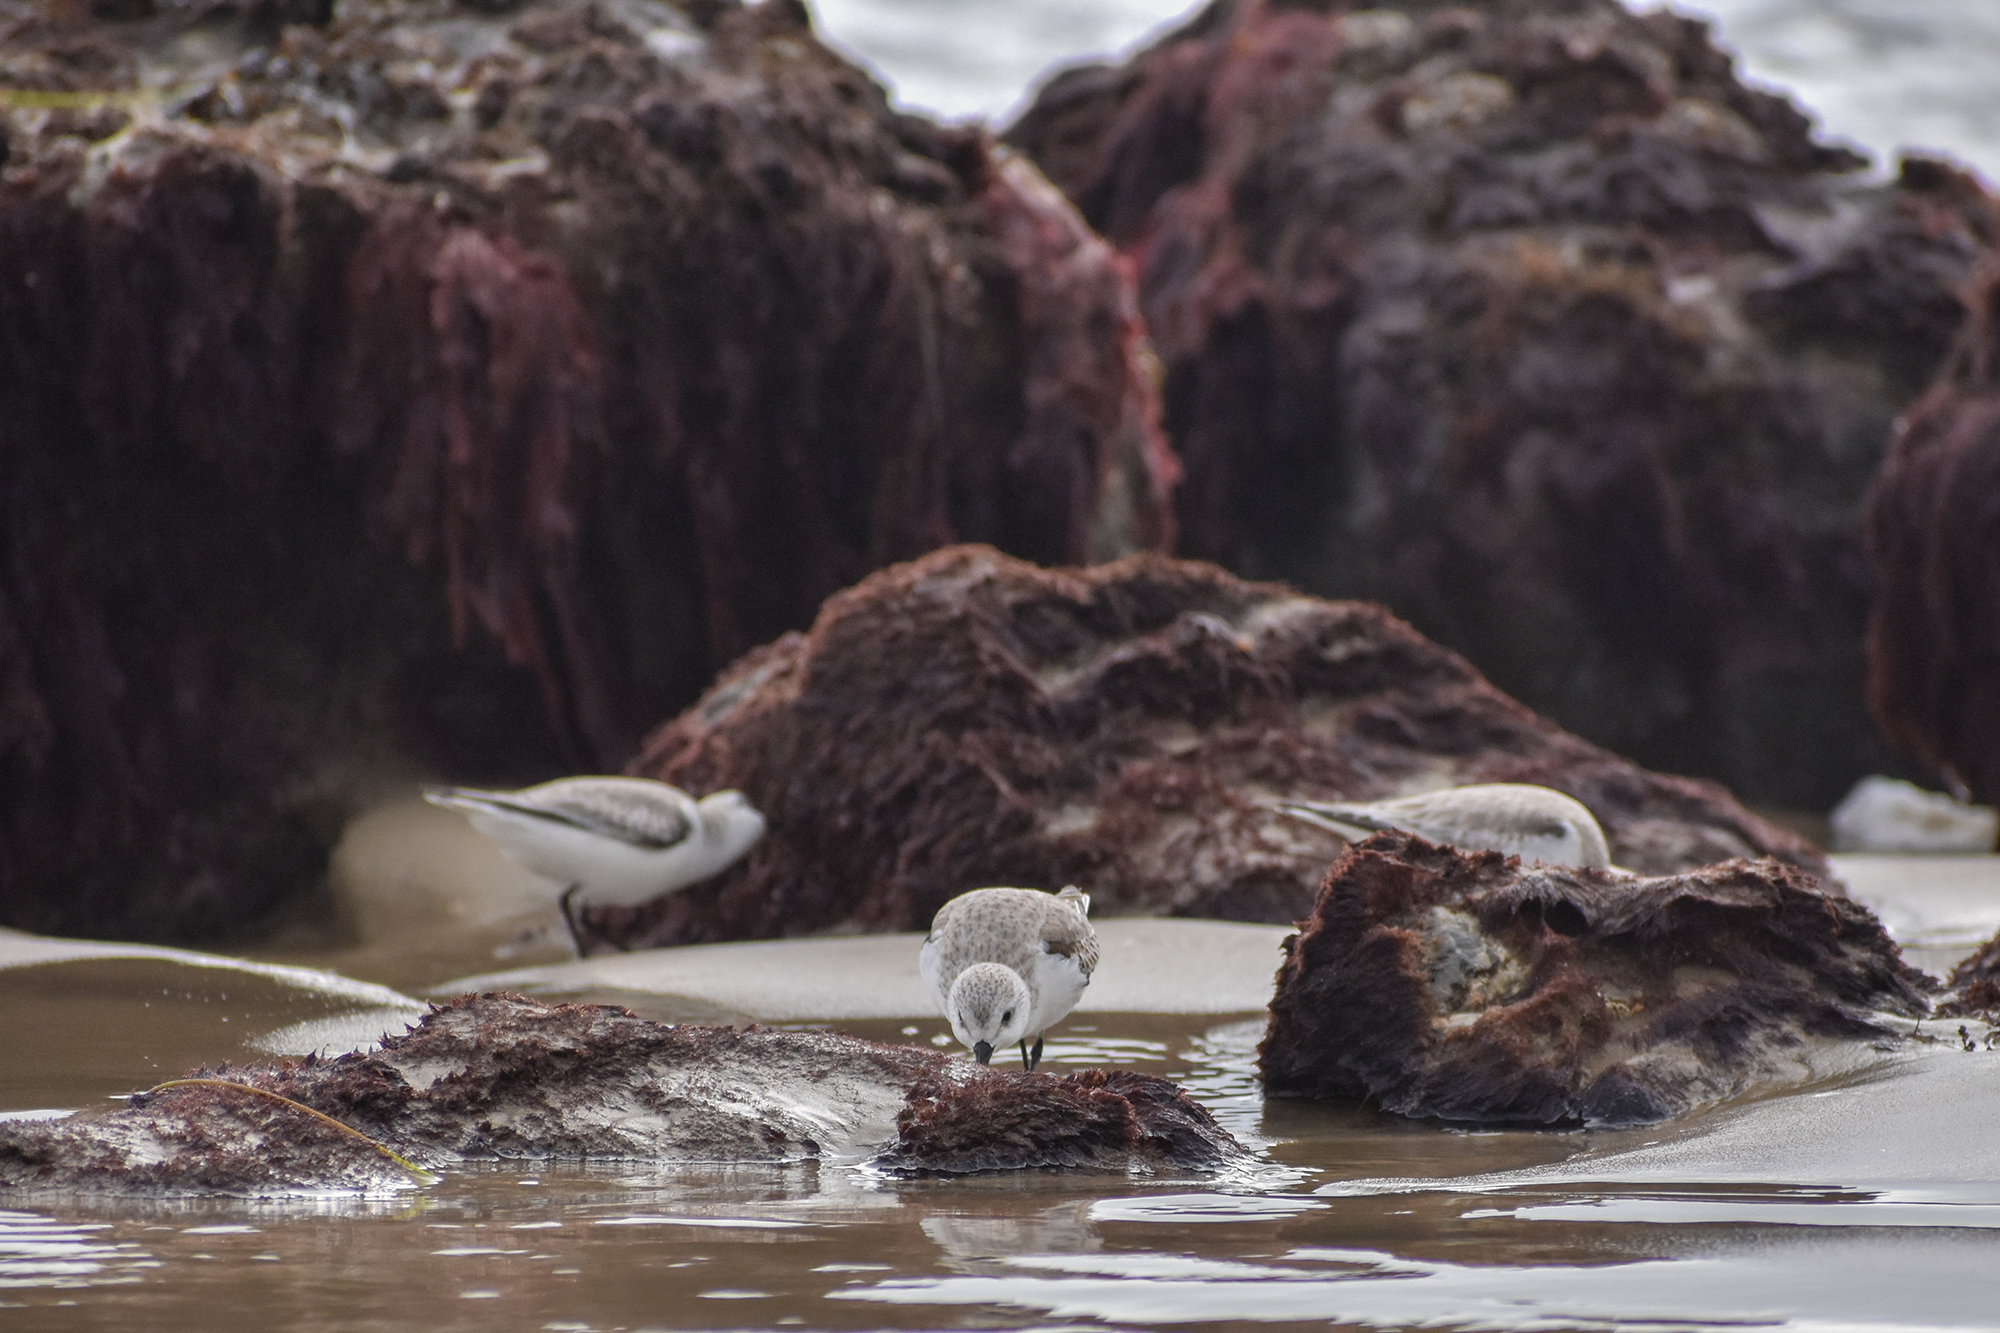 Sand pipers search for food nestled in purple rocks along the Southern California coastline.